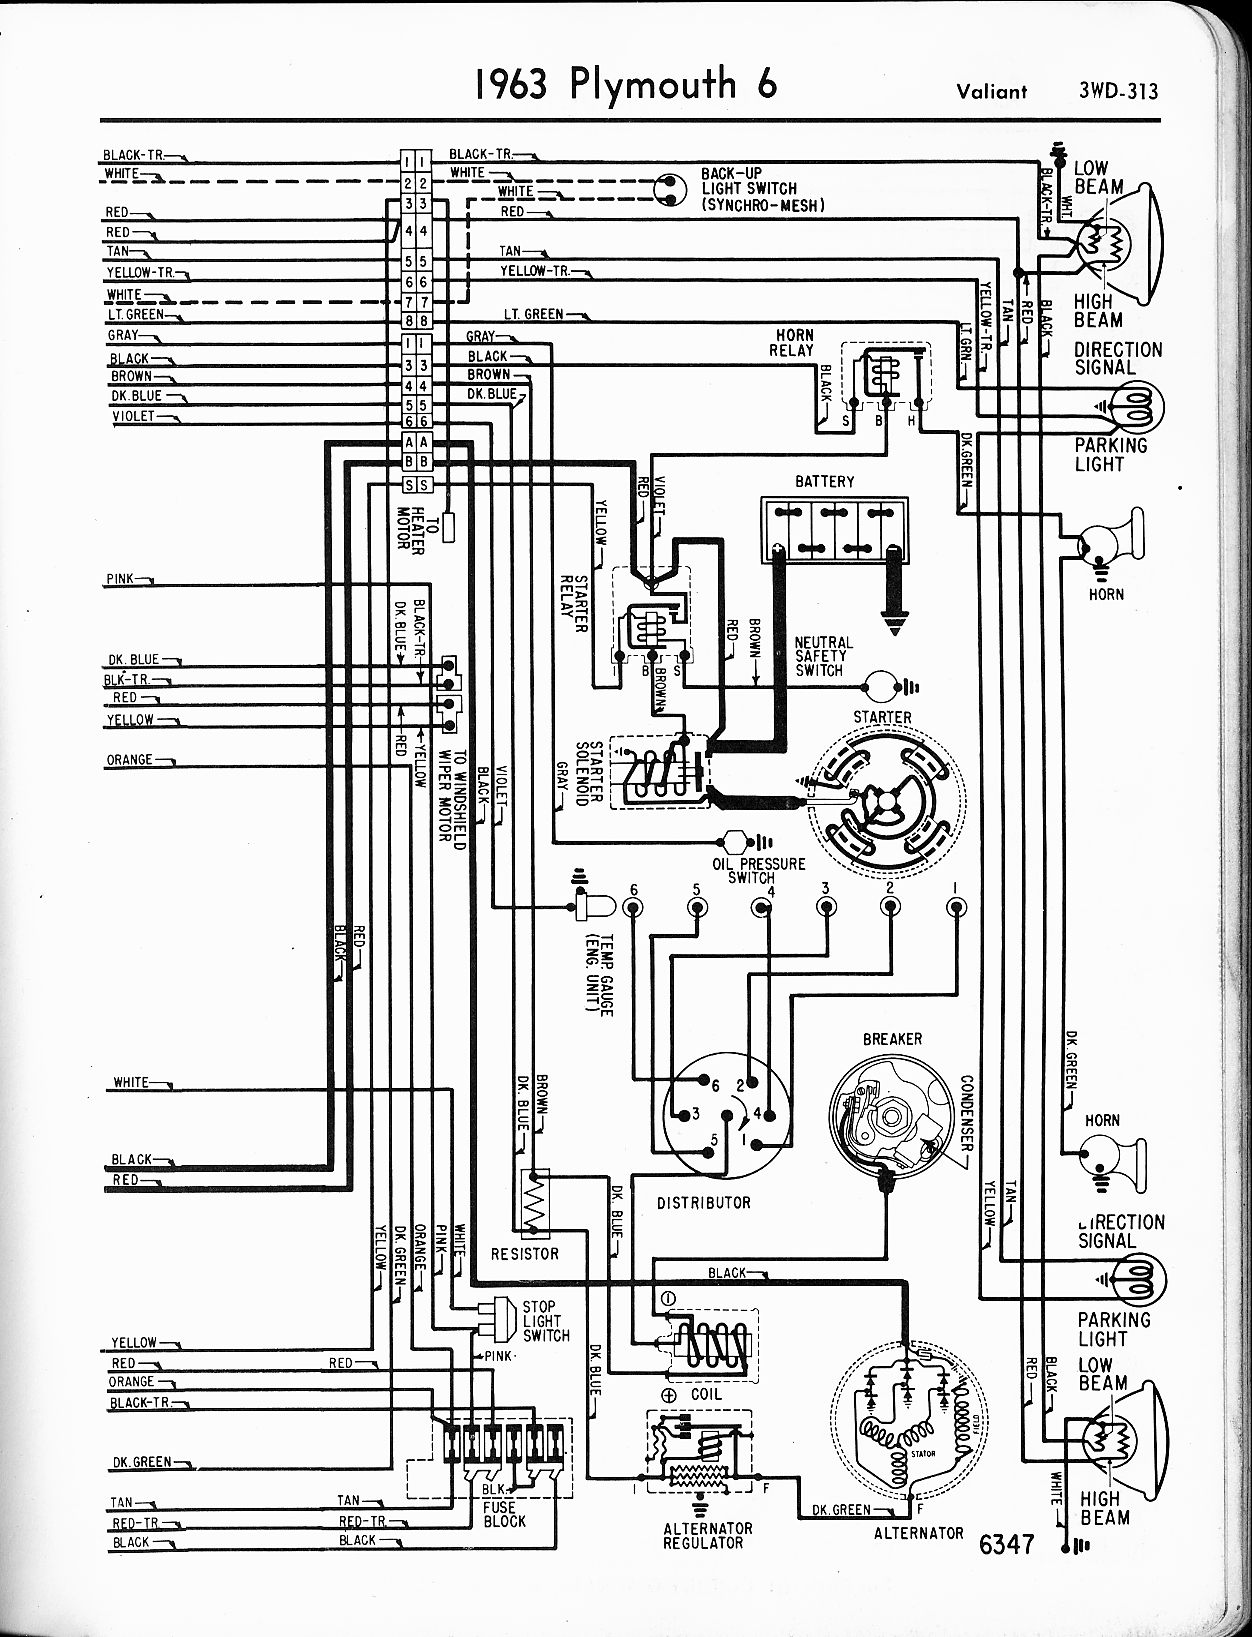 1971 Plymouth Duster Wiring Diagram Guide And Troubleshooting Of Chevy Wiper Satellite Todays Rh 8 6 12 1813weddingbarn Com Nova